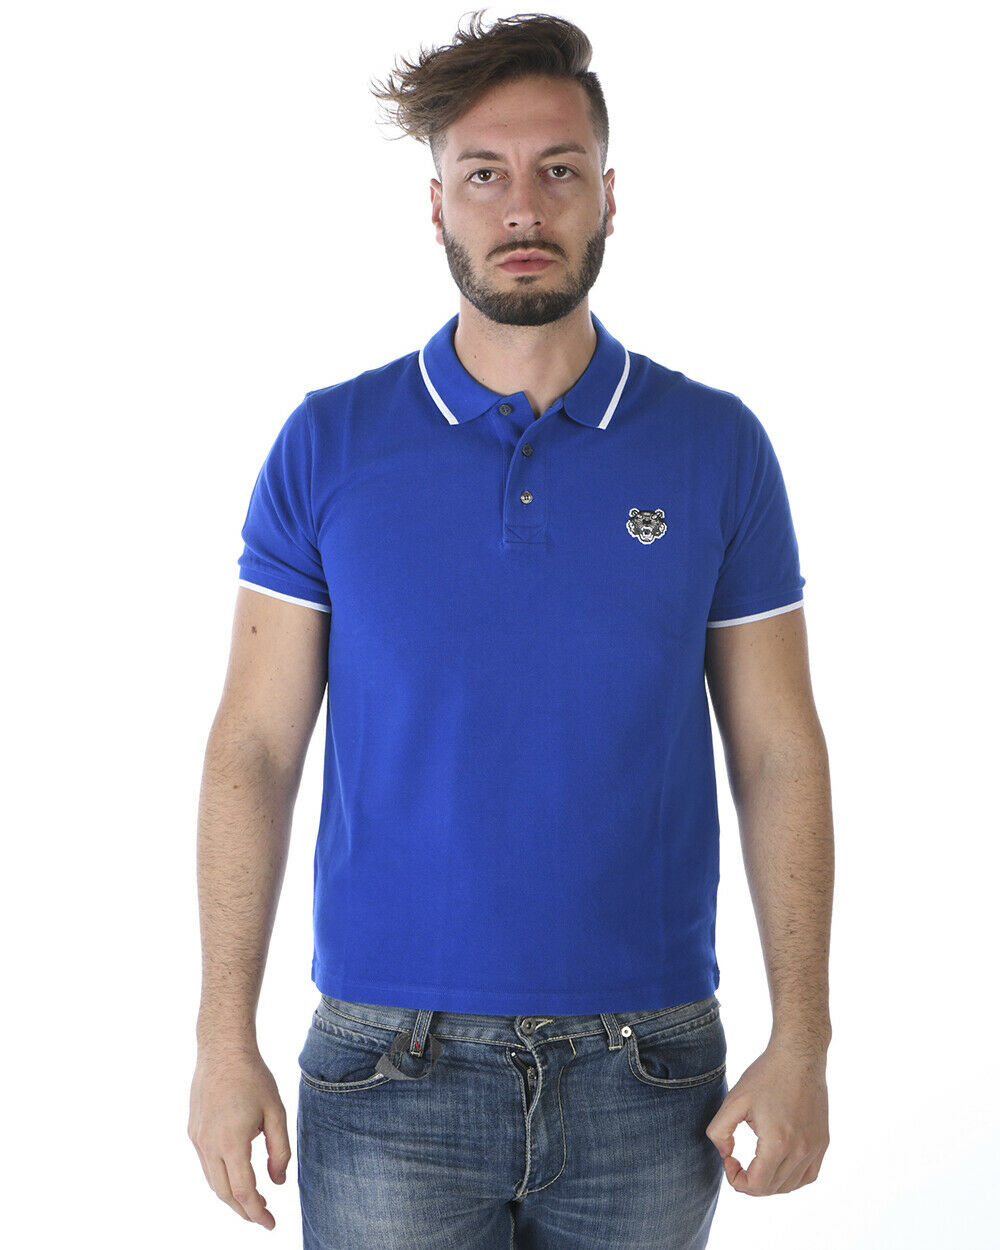 Kenzo Polo hemd TIGER baumwolle Man Blau 4BA5PO001 74FB Sz. M PUT OFFER